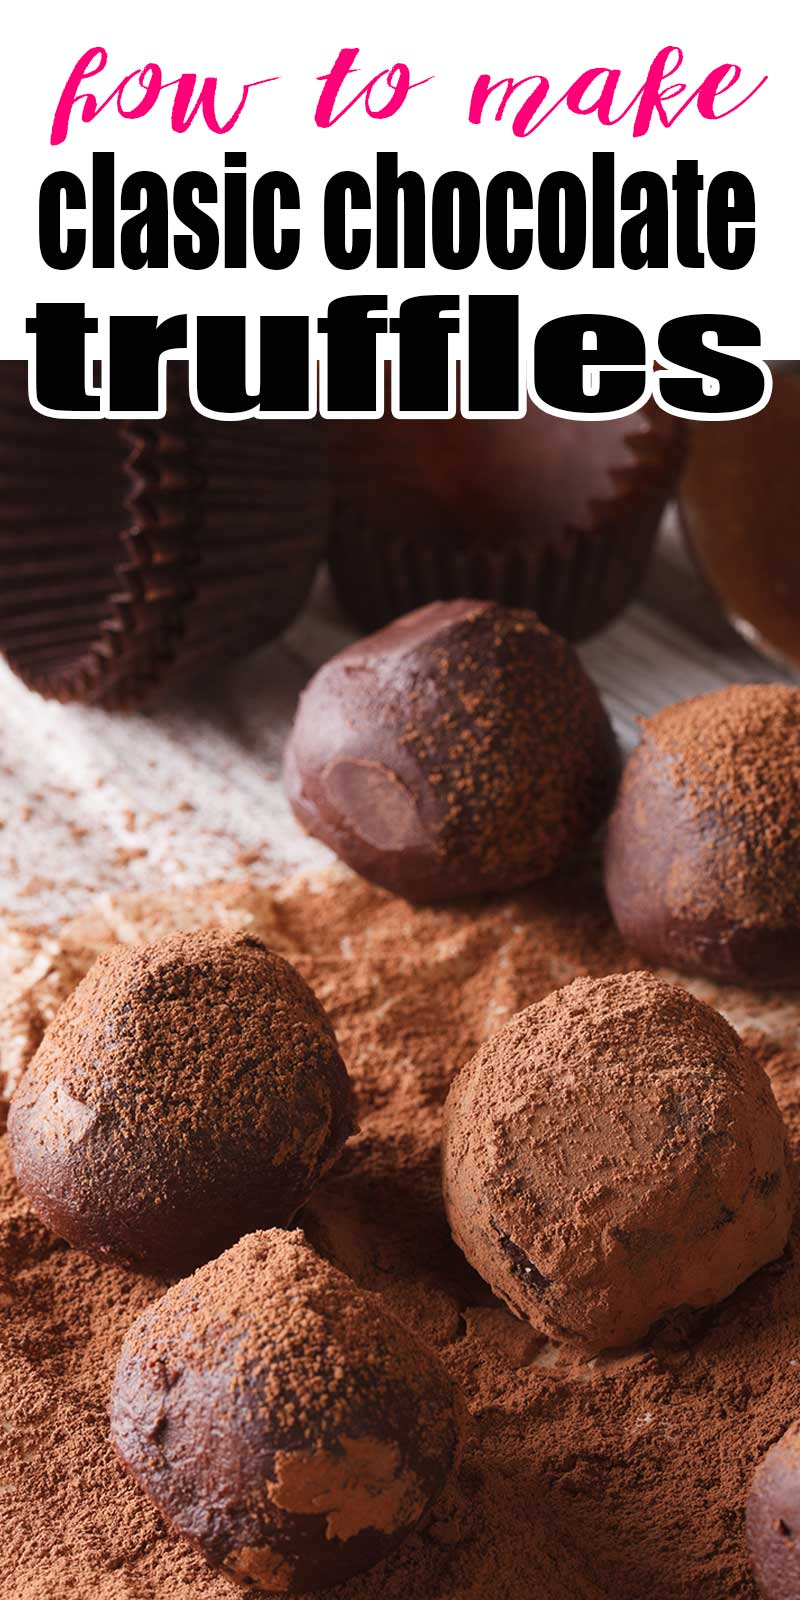 chocolate truffles dipped in cocoa powder